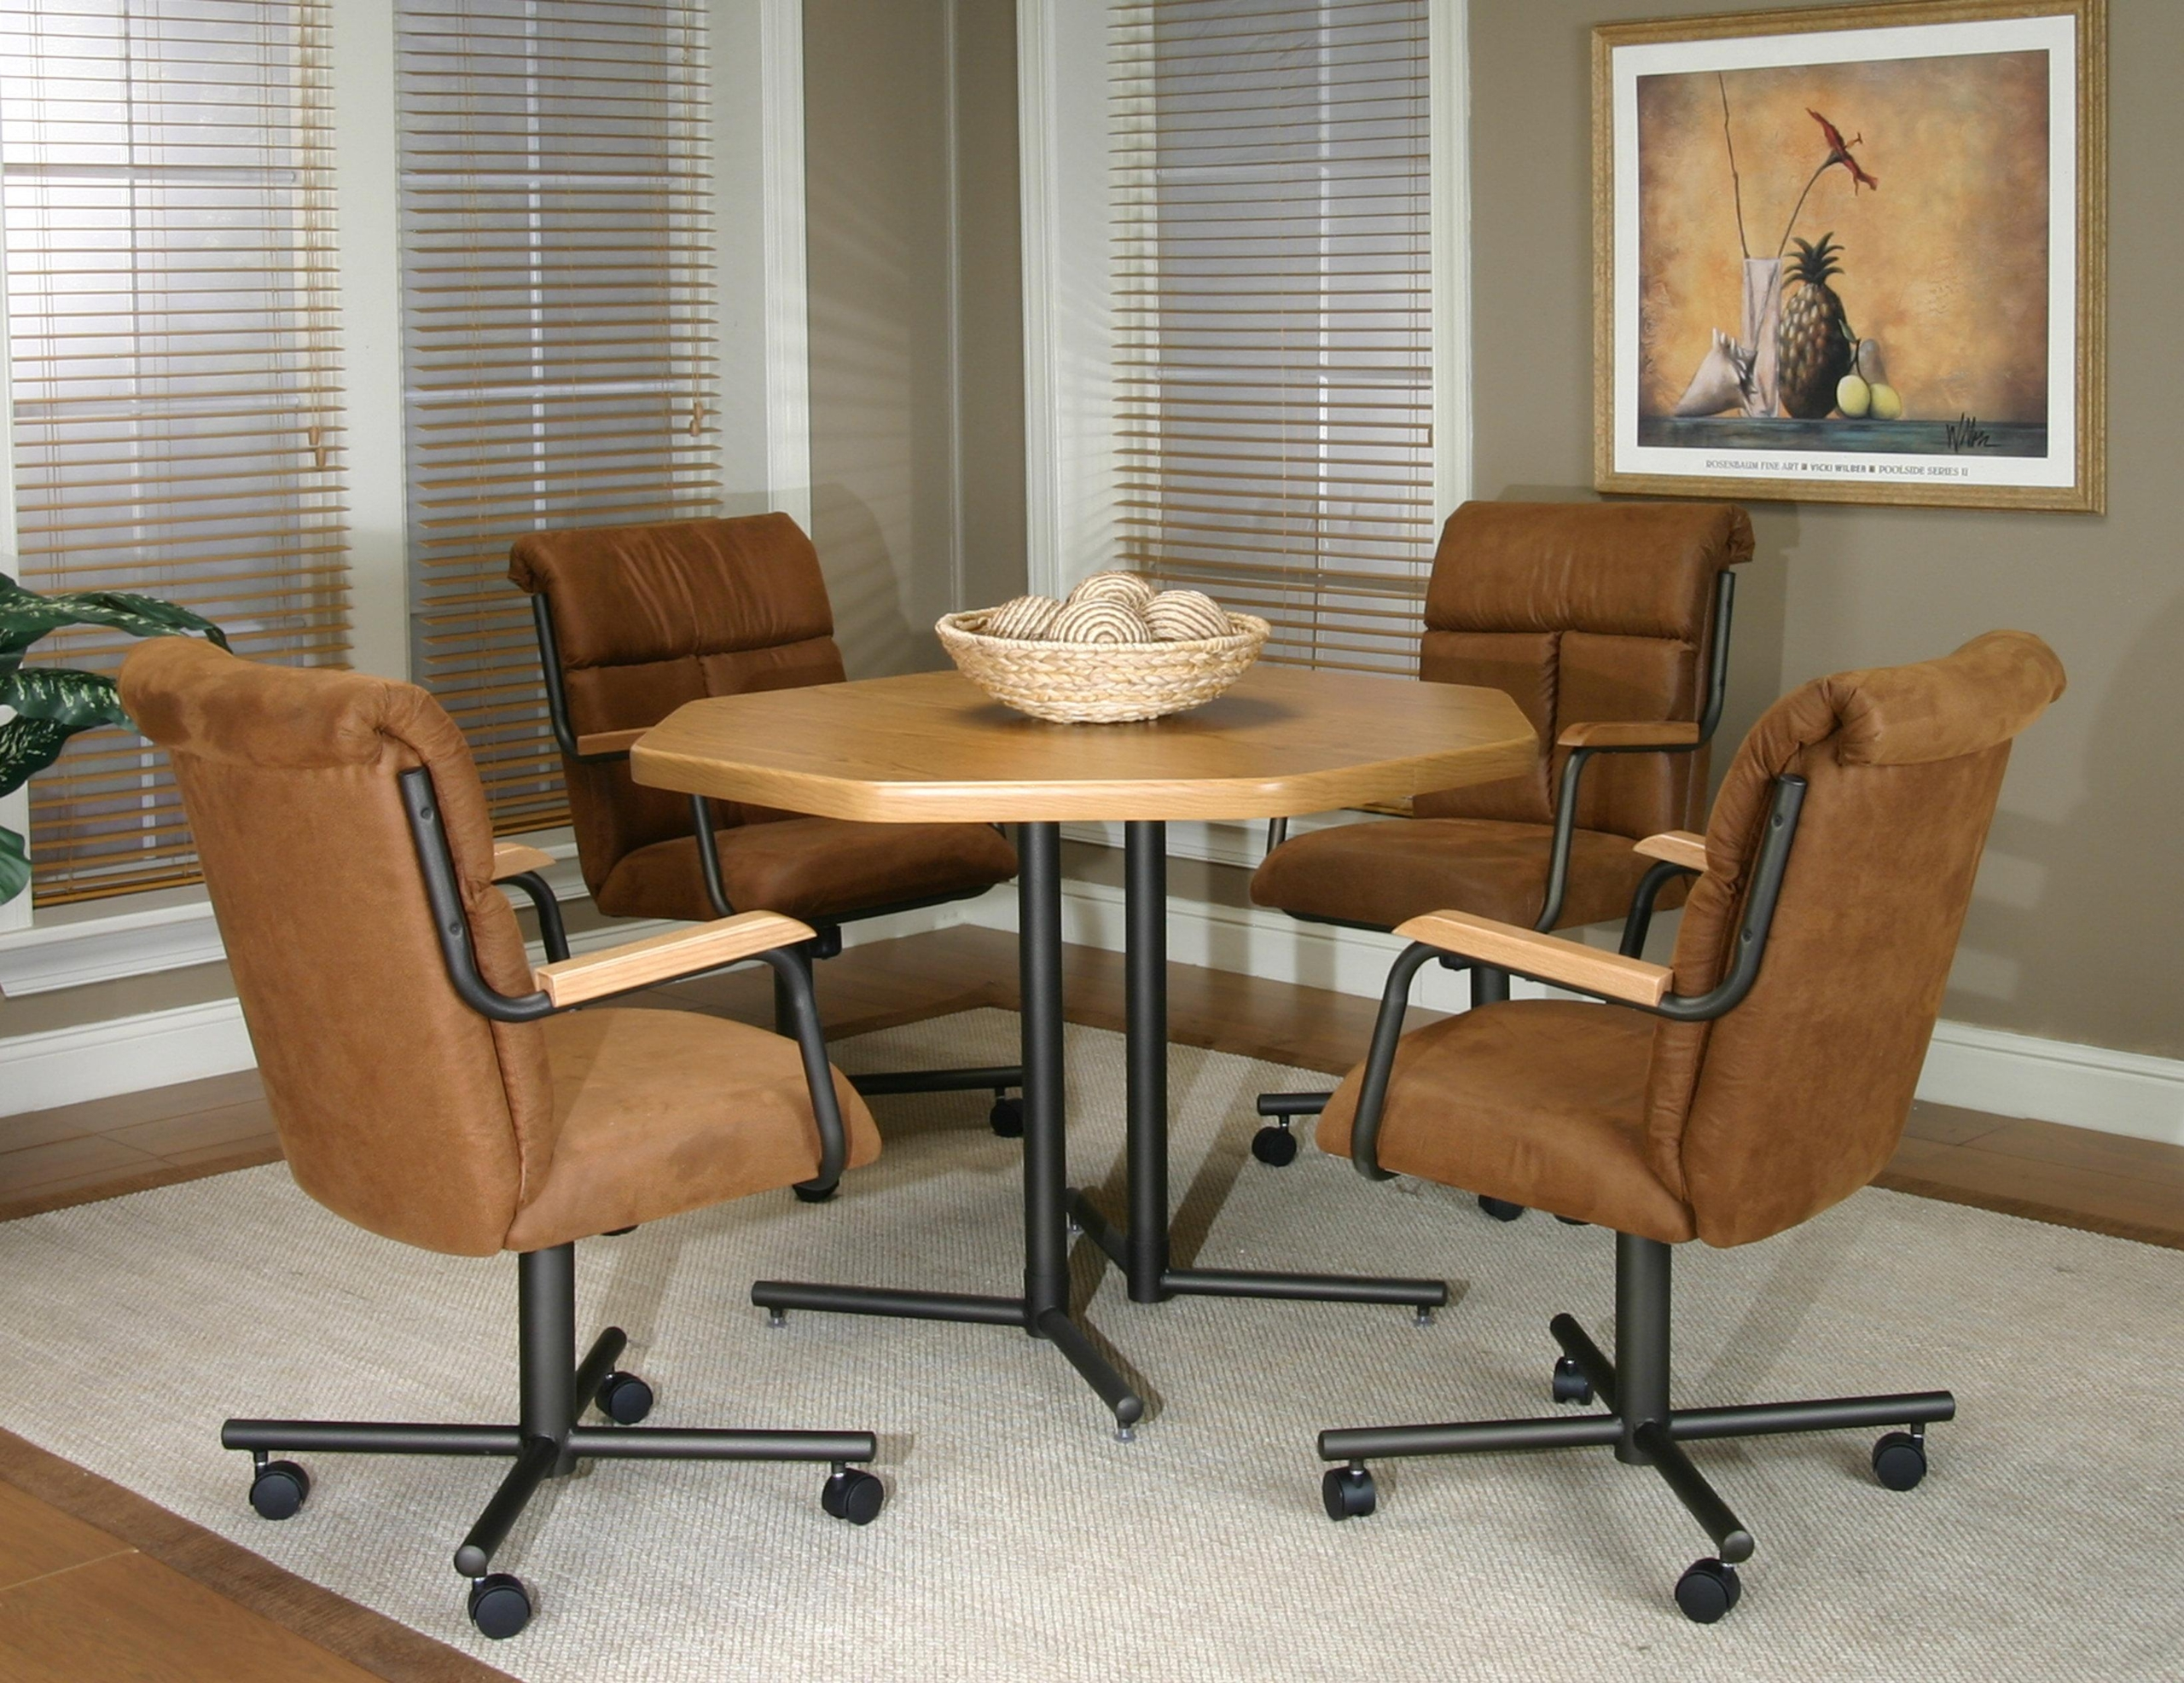 Etonnant Furniture. The Dinette Set With Caster Chairs For A Cozy